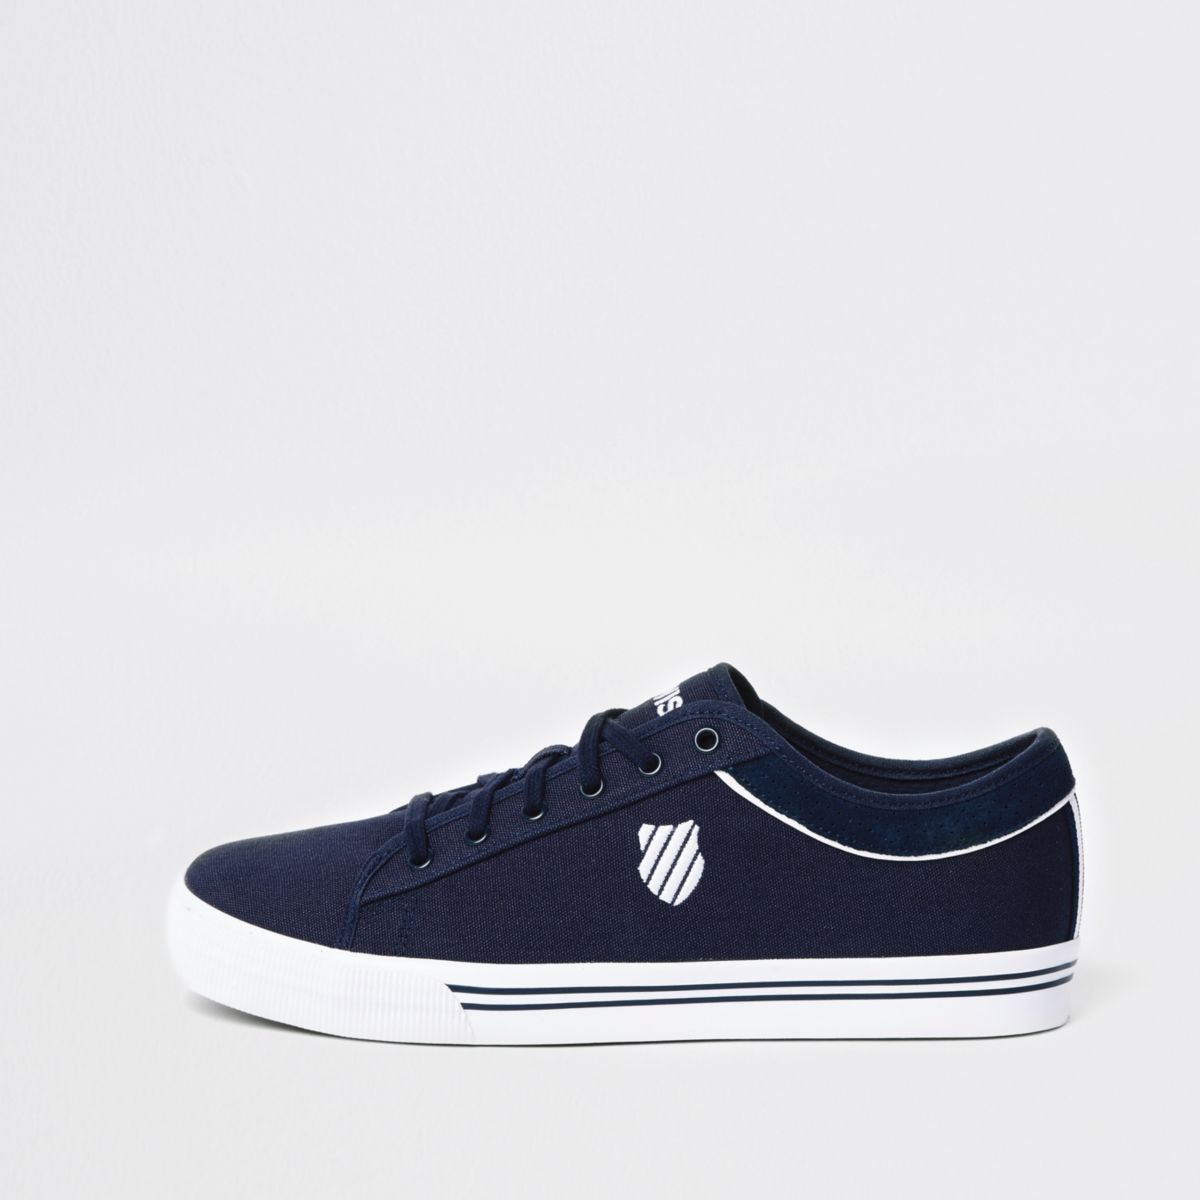 Navy K-Swiss low top canvas trainers